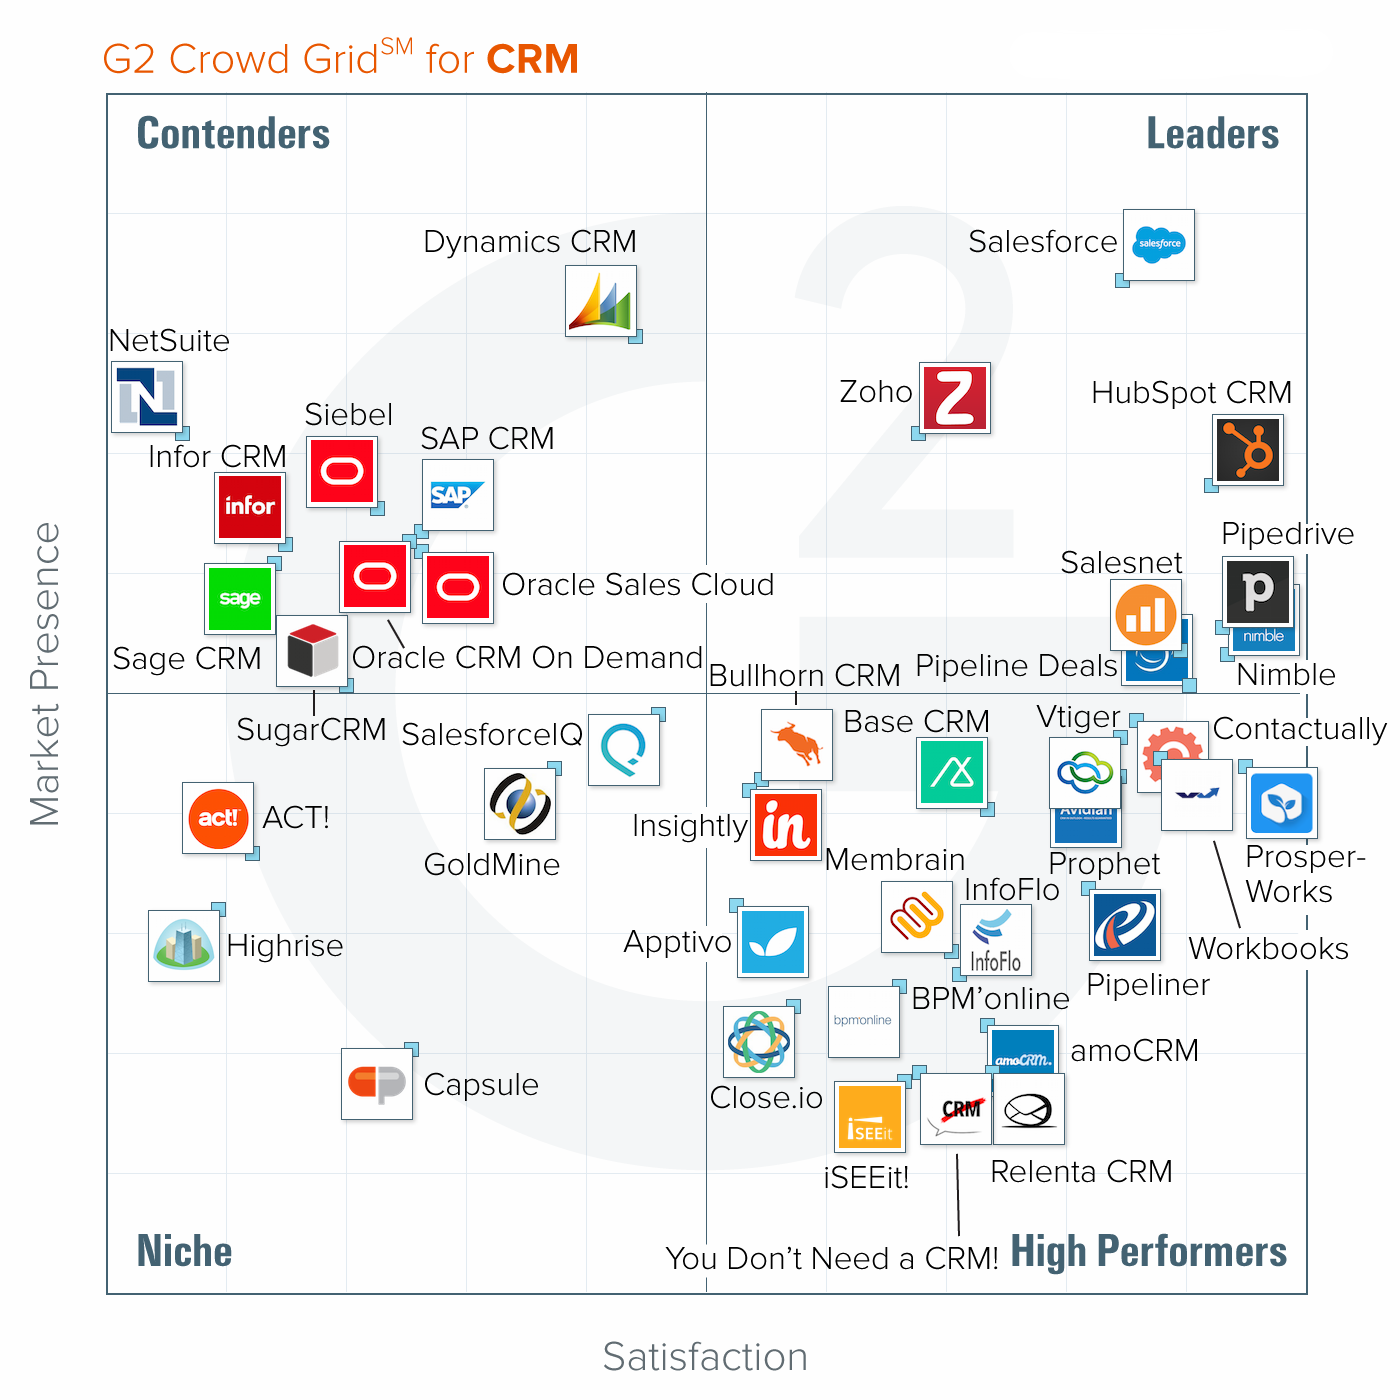 G2 Crowd, https://www.g2crowd.com/categories/crm